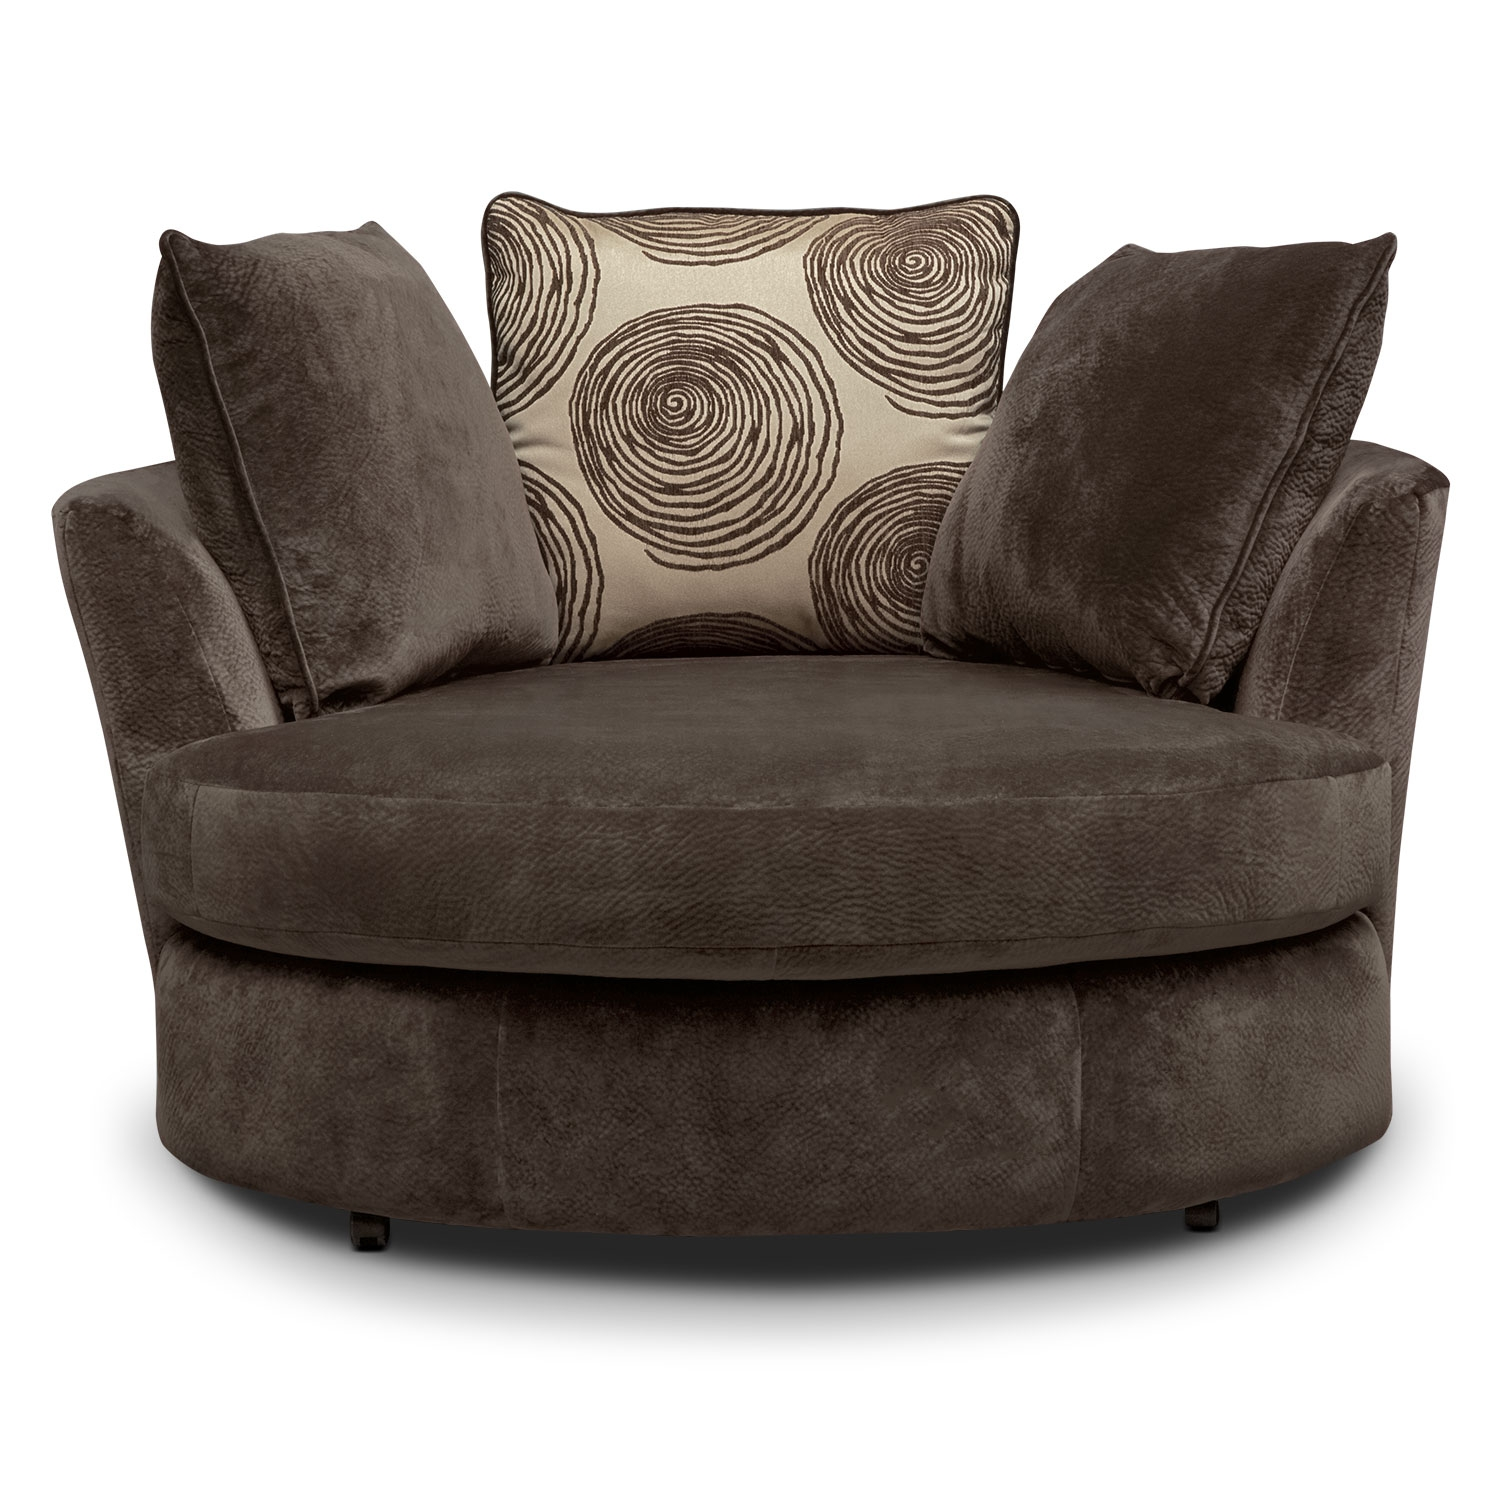 Cordelle Swivel Chair Chocolate Value City Furniture Throughout Spinning Sofa Chairs (View 12 of 15)